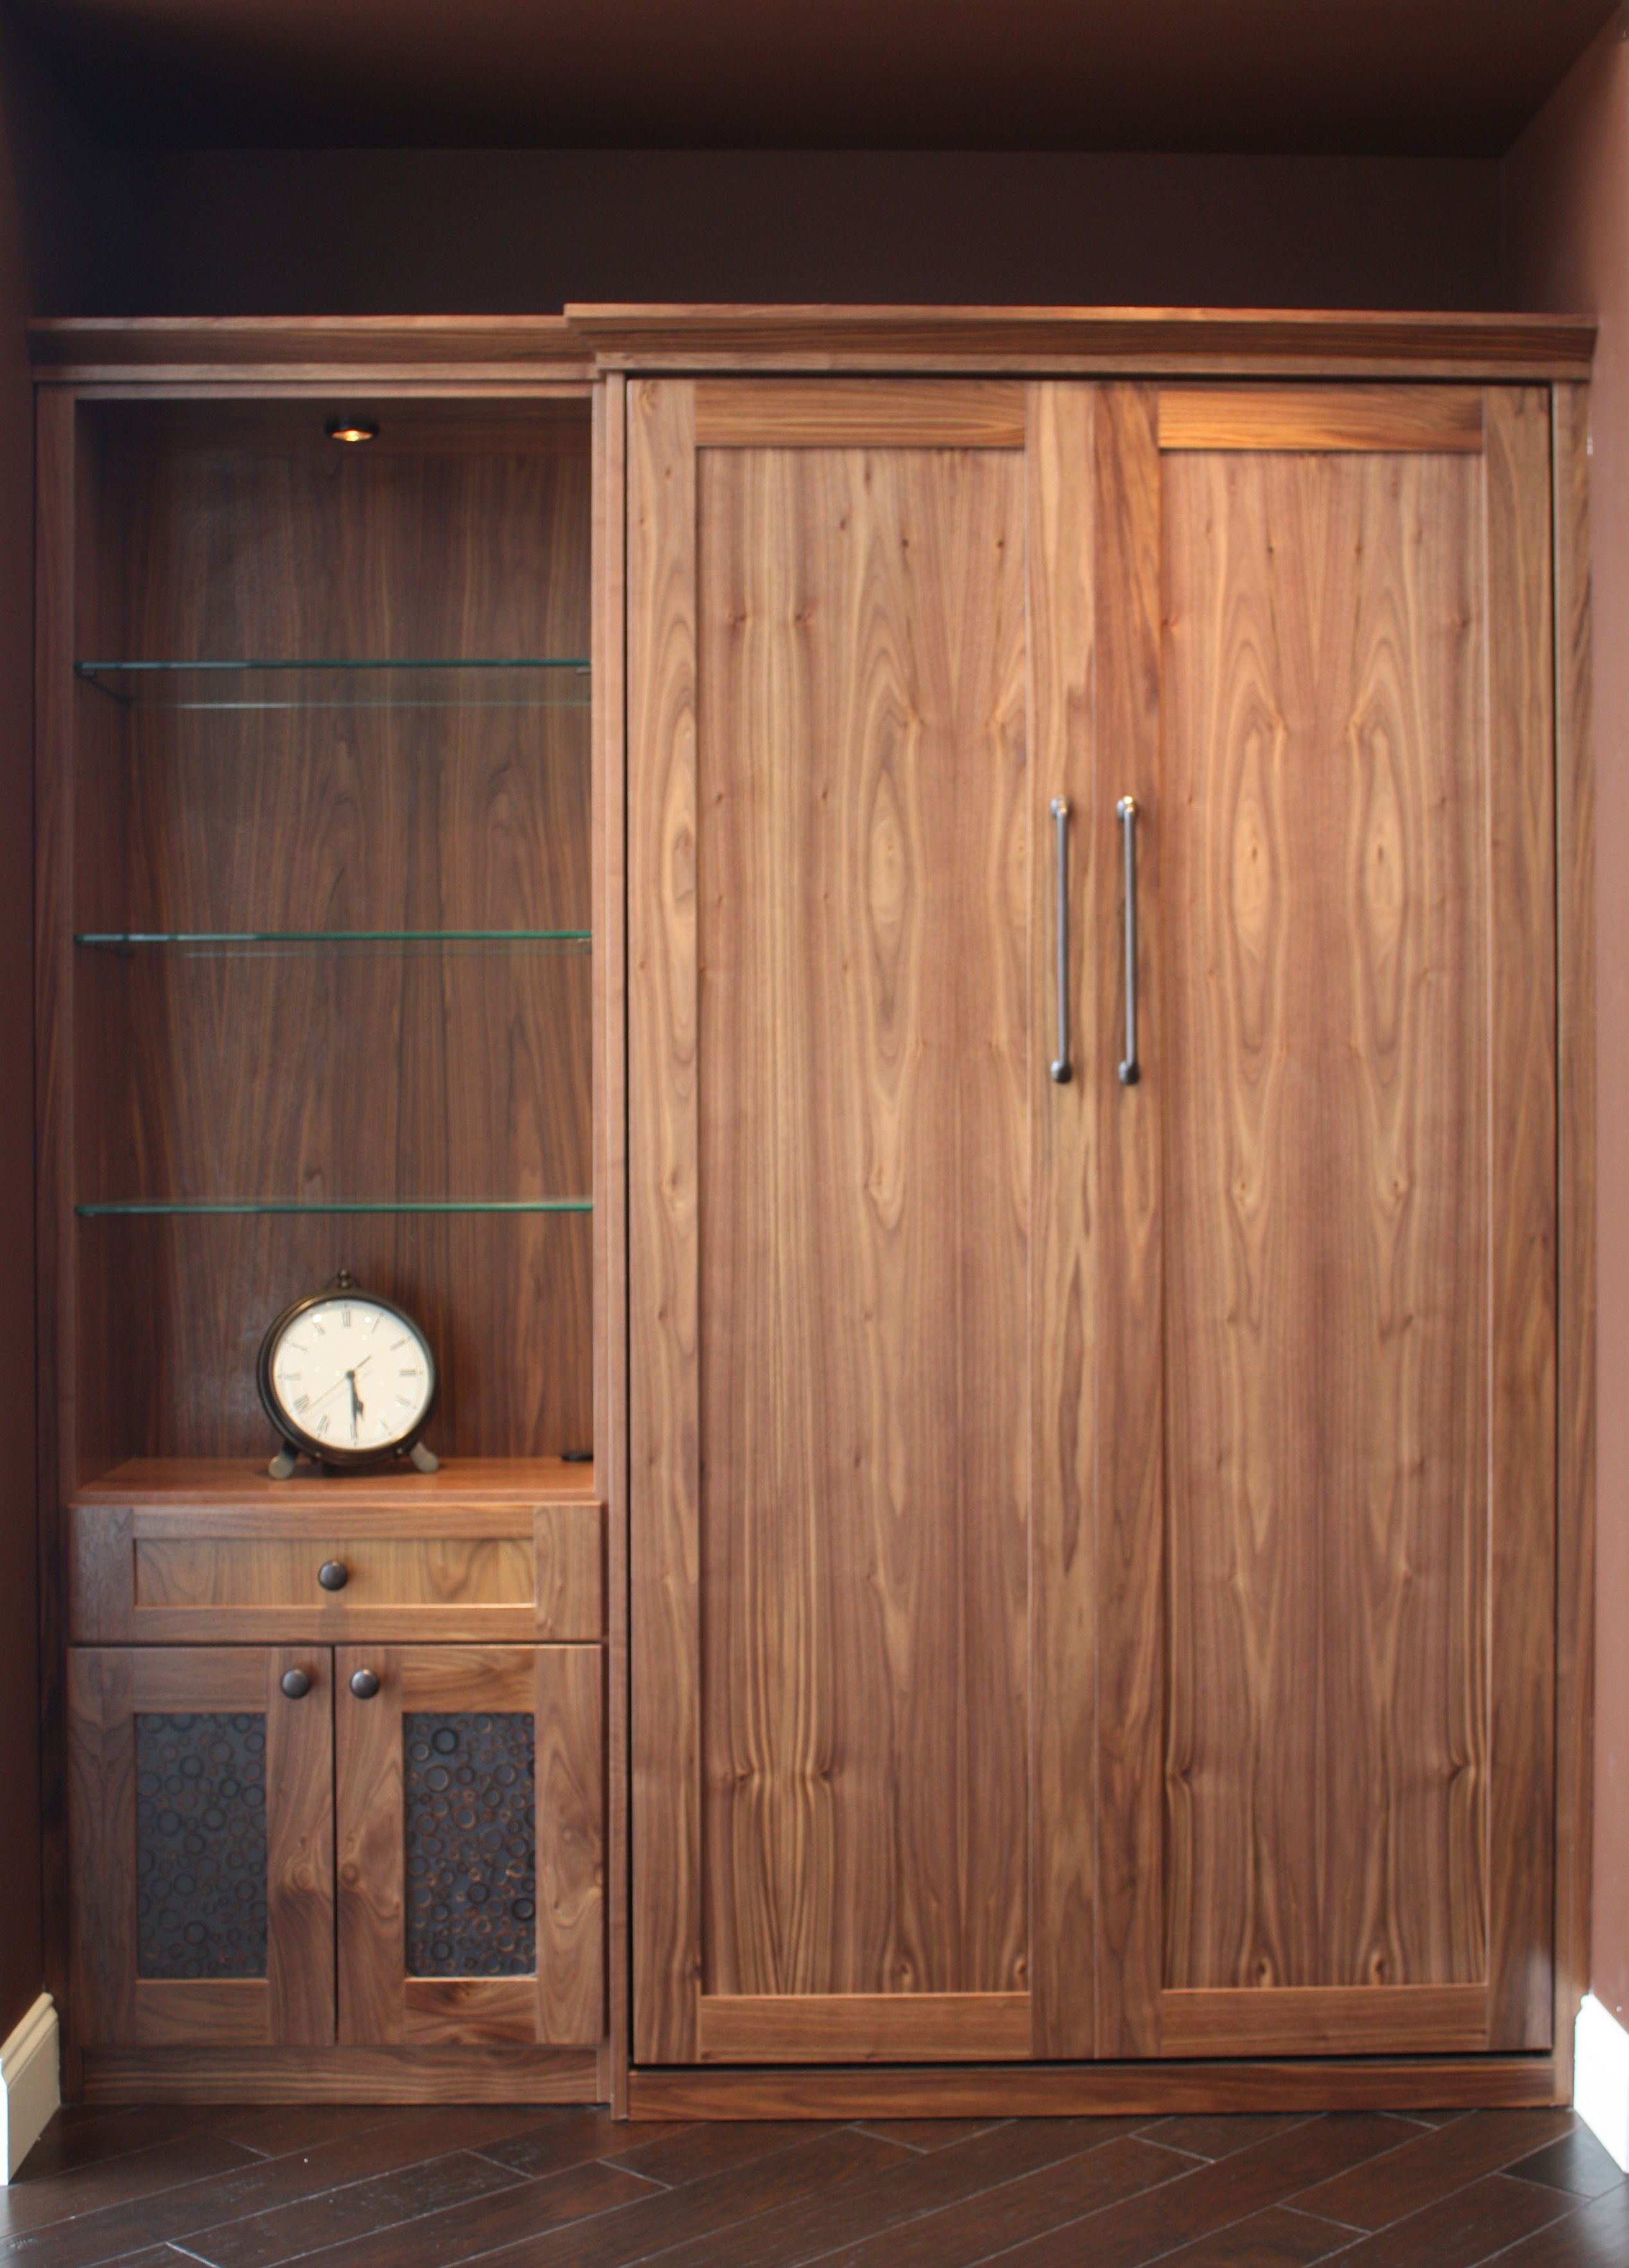 California closets las vegas - 17 Best Images About Wall Beds On Pinterest The California Custom Wall And Small